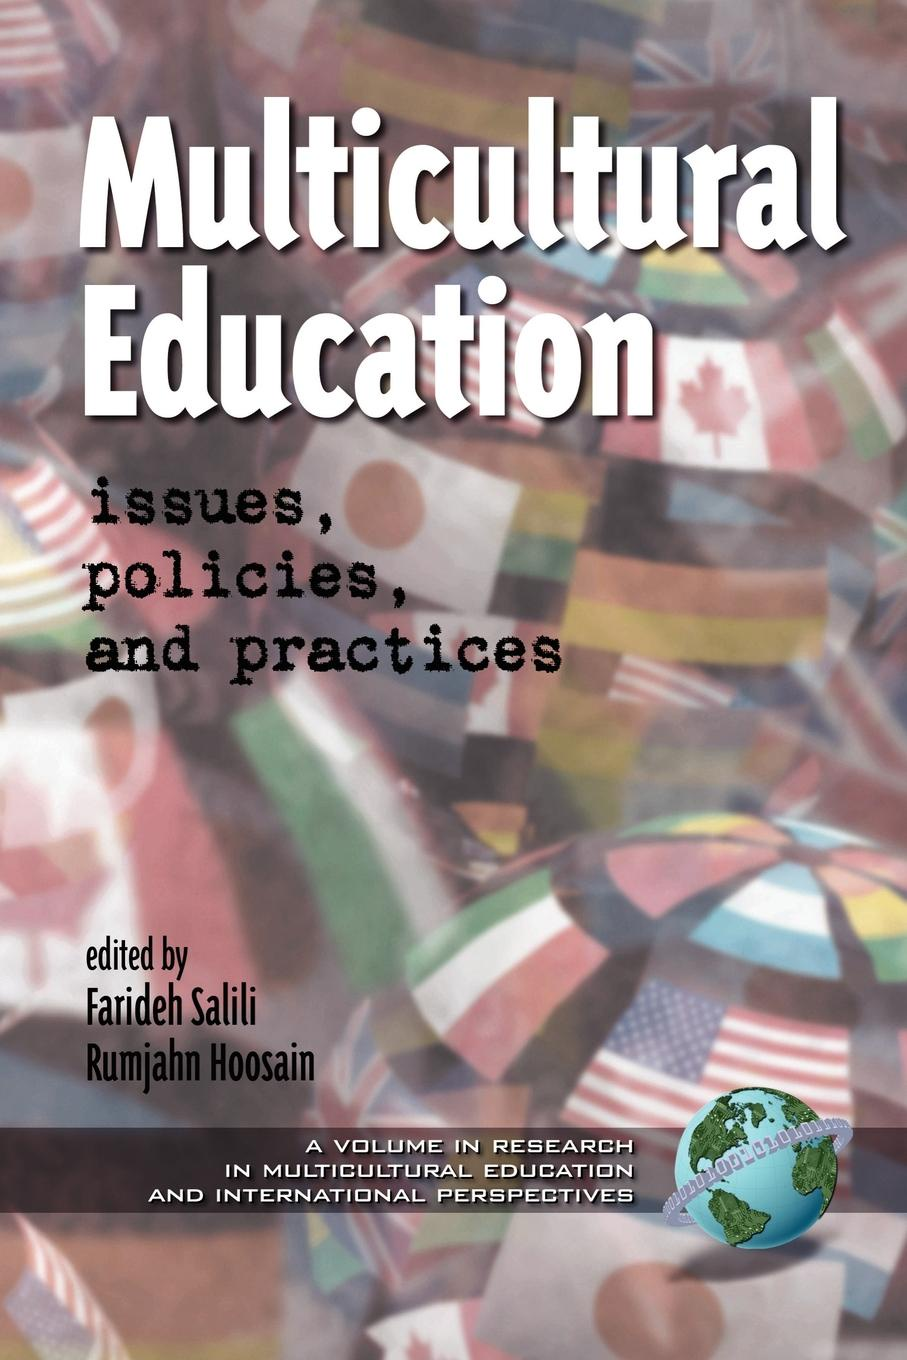 Multicultural Education. Issues, Policies, and Practices (PB) cross national information and communication technology policies and practices in education revised second edition pb